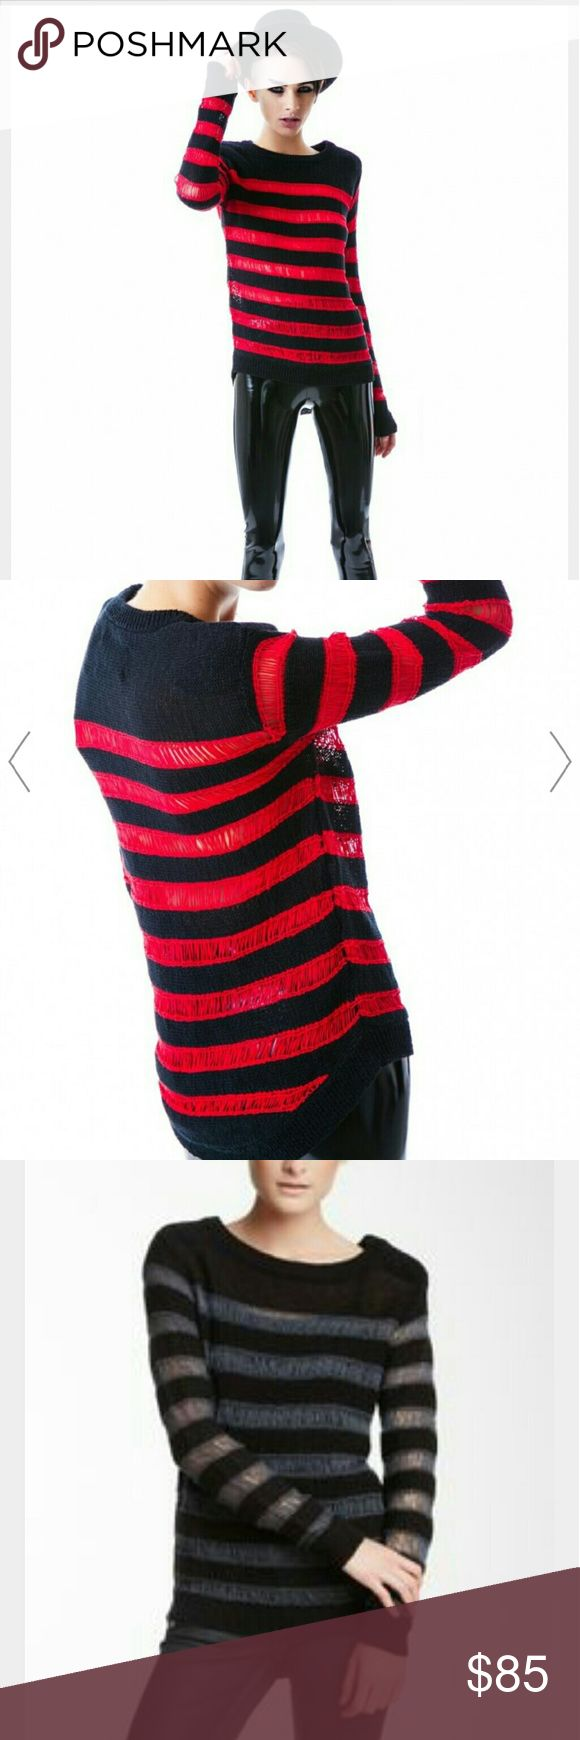 THE KRUEGER SWEATER  From Kill city  $130.00 Kill City The Krueger Sweater is an amazing knitted sweater from our homies at Kill City! This dark and moody long sleeve sweater features a sikk distressed appearance with red stripes running horizontally made from a drop needle stitching technique that makes the loose knits sheer. Featuring reinforced strong shoulder and tape yarn fibers, wide neckline, long sleeves on a sheer knit body, you?ll have sweet dreams when you wear this BB…